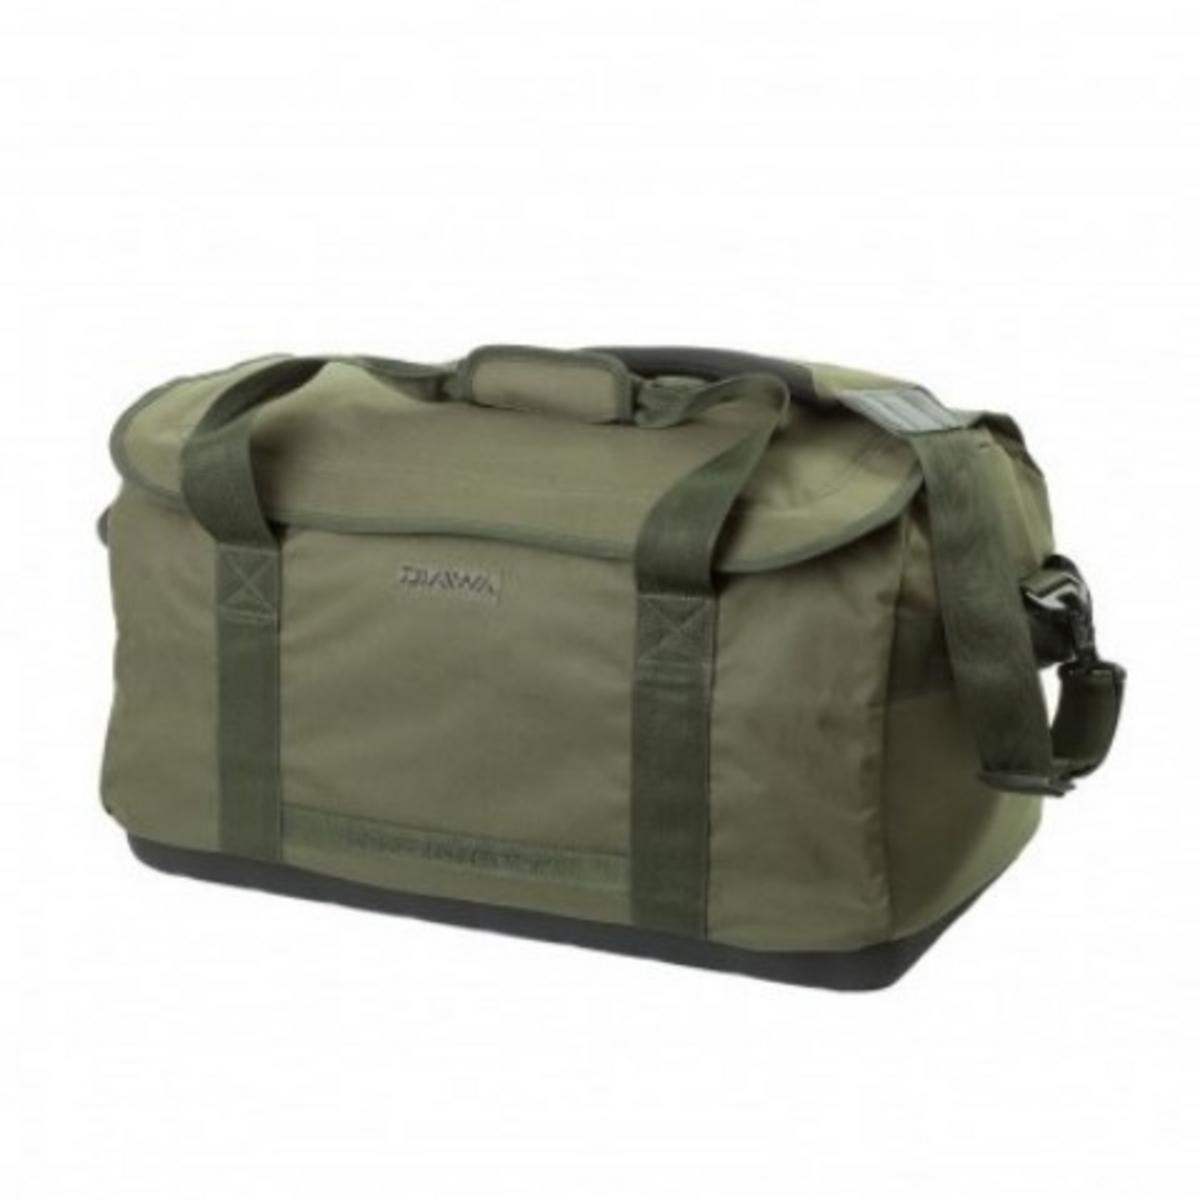 Special Clearance Offer Daiwa Infinity Stuff It All Carryall Bag - DISIAC1